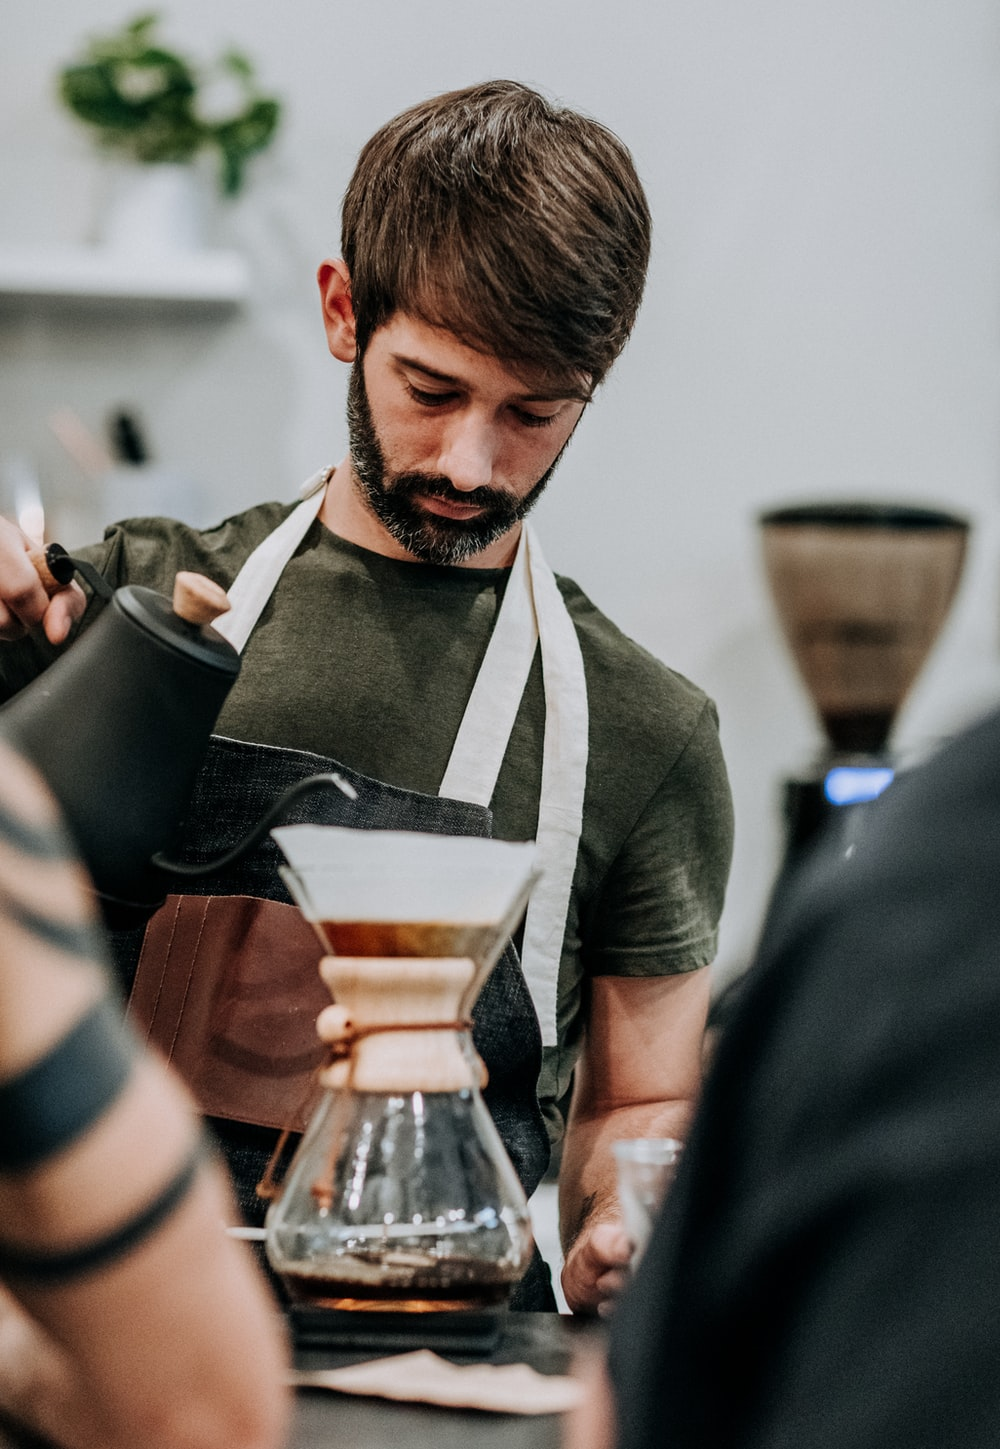 man in black apron holding black and white ceramic cup